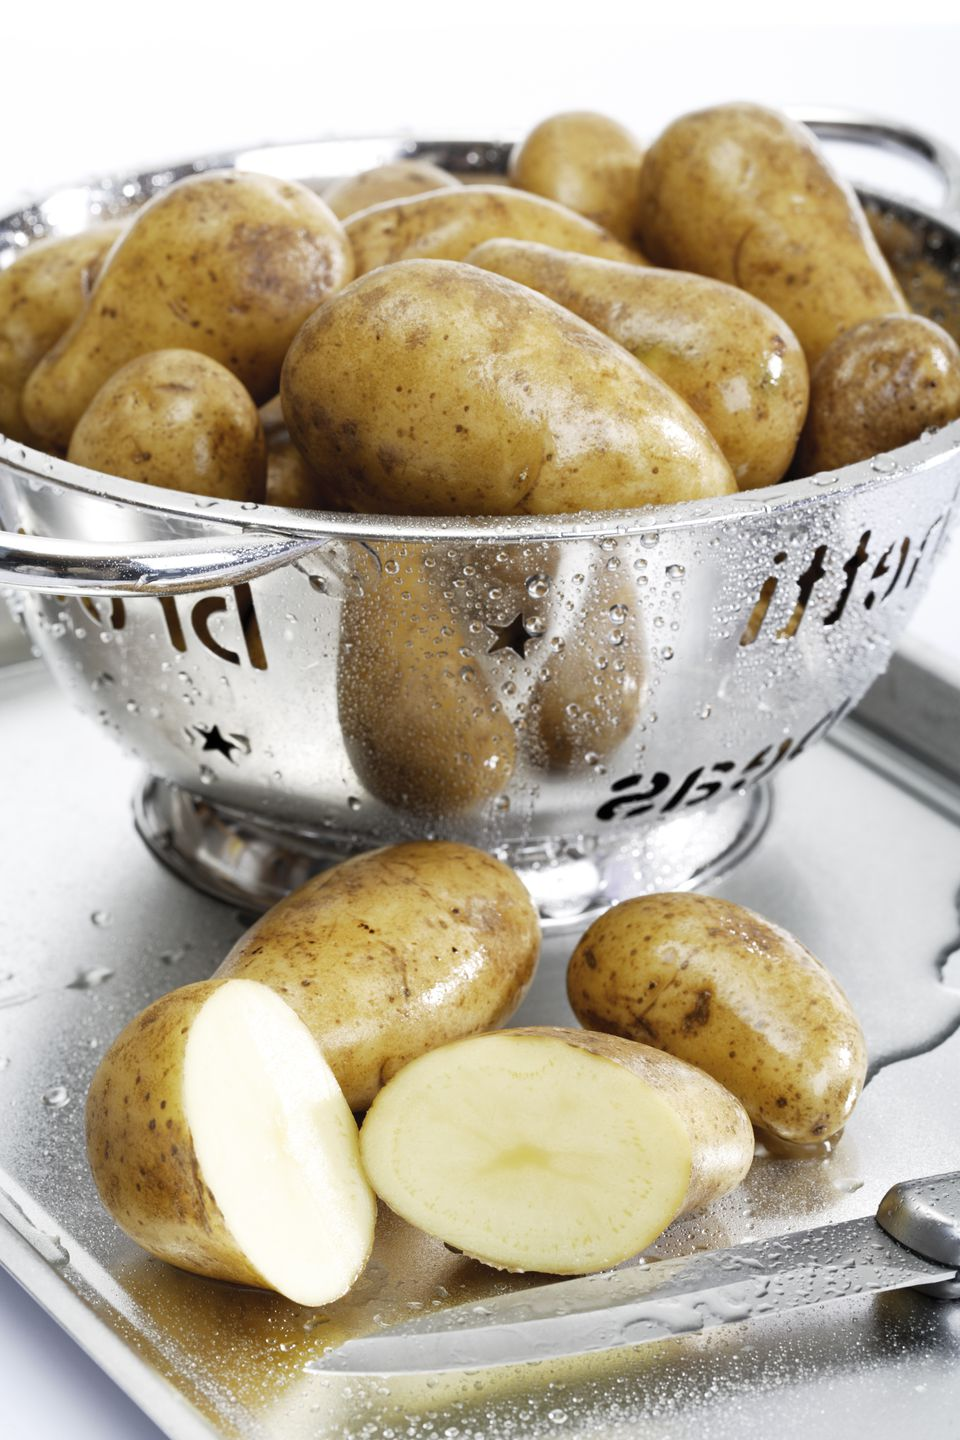 Raw potatoes in colander, close-up